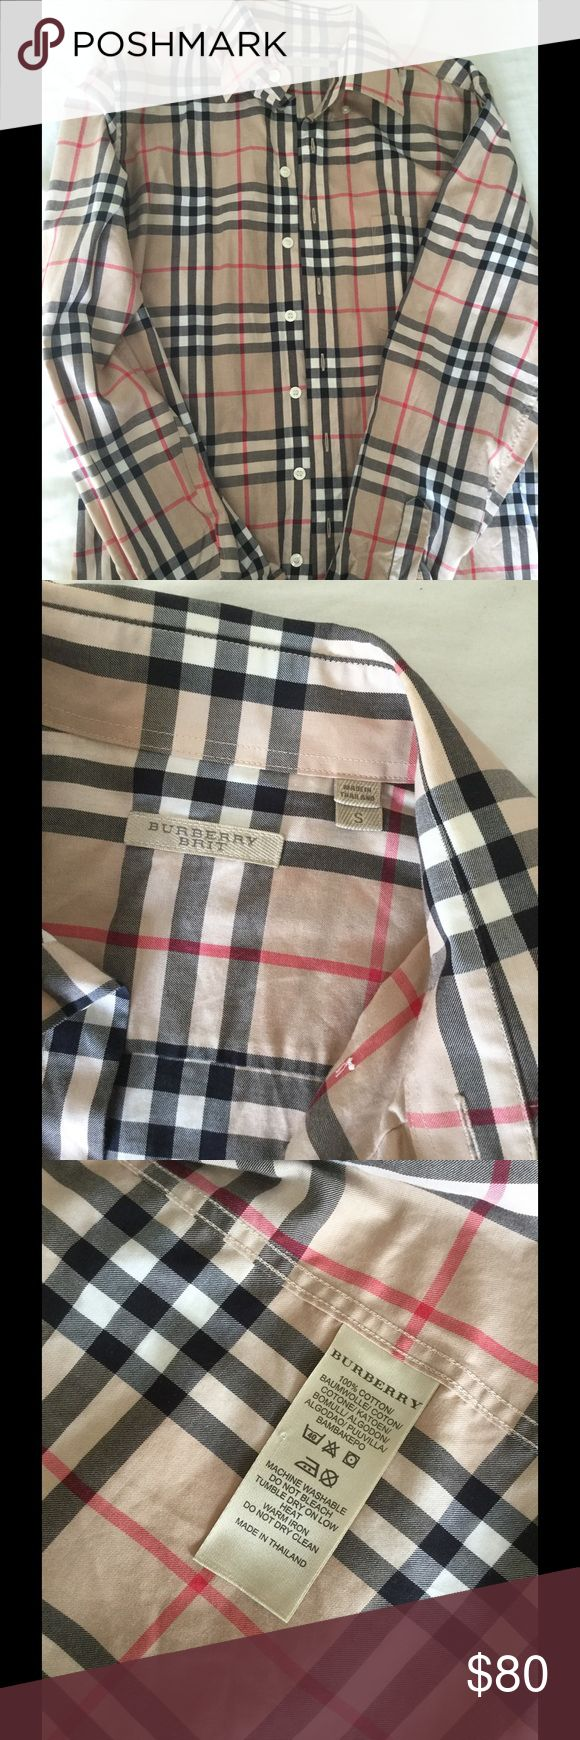 Burberry shirt for man 85% brand new , wore 3 times Burberry Shirts Casual Button Down Shirts